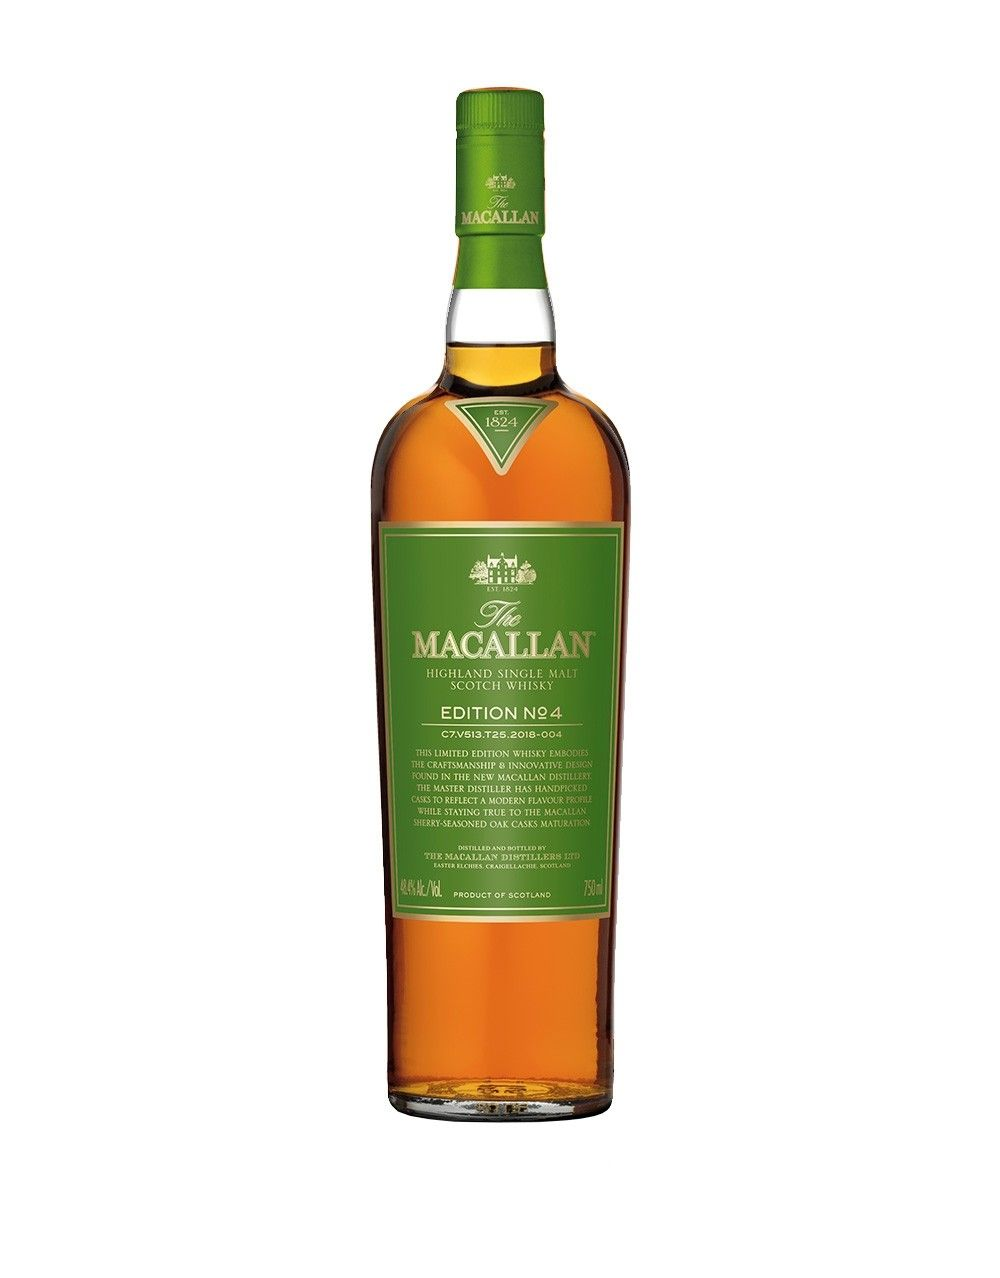 The Macallan Edition No. 4 Limited Edition - 1 Bottle